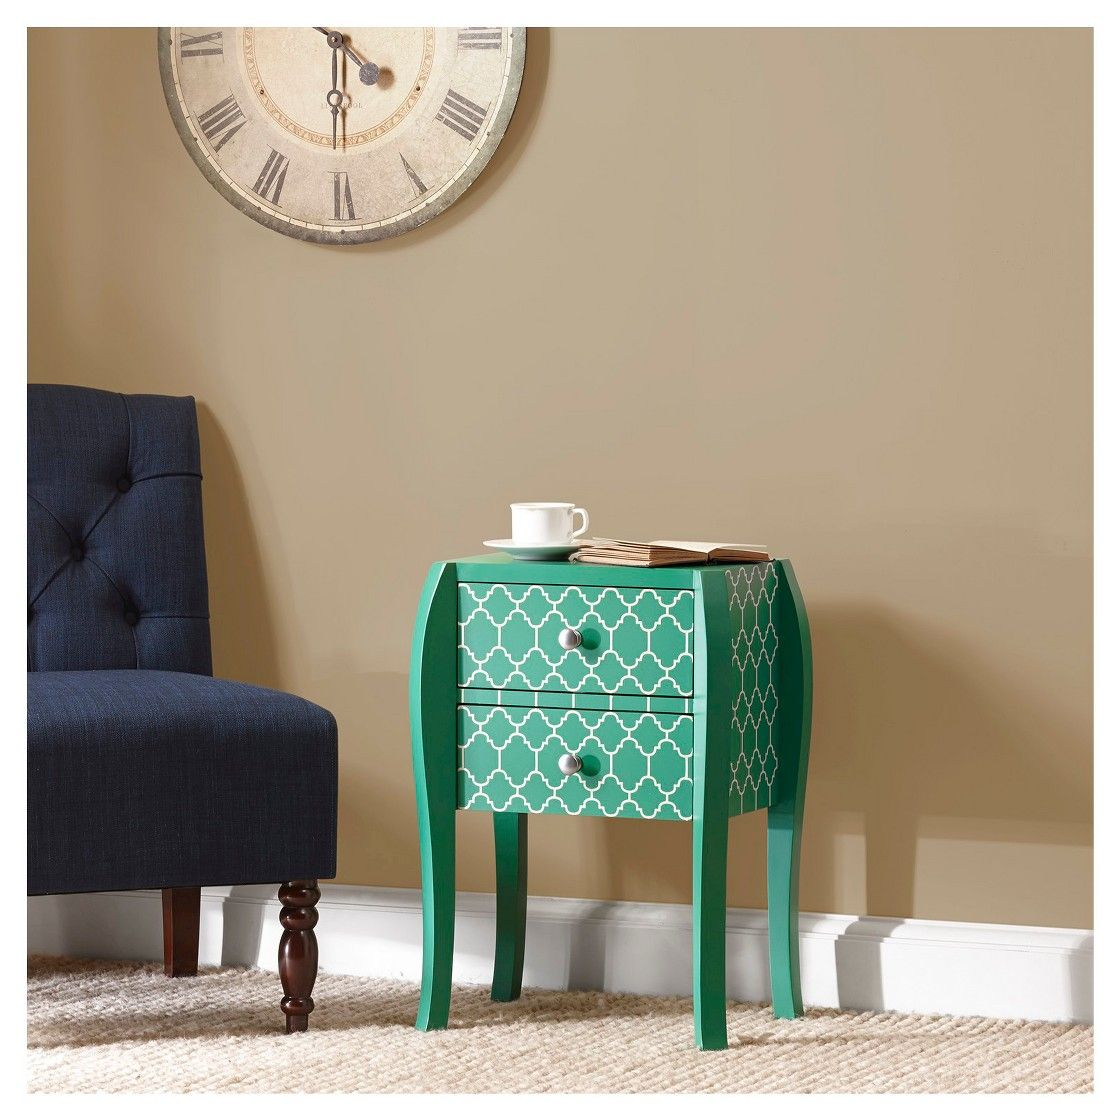 qautrefoil bombay end table green boy stuff emerald accent inch wide nightstand weber grill white sliding barn door decorative wine rack huge wall clock hammered metal coffee ikea